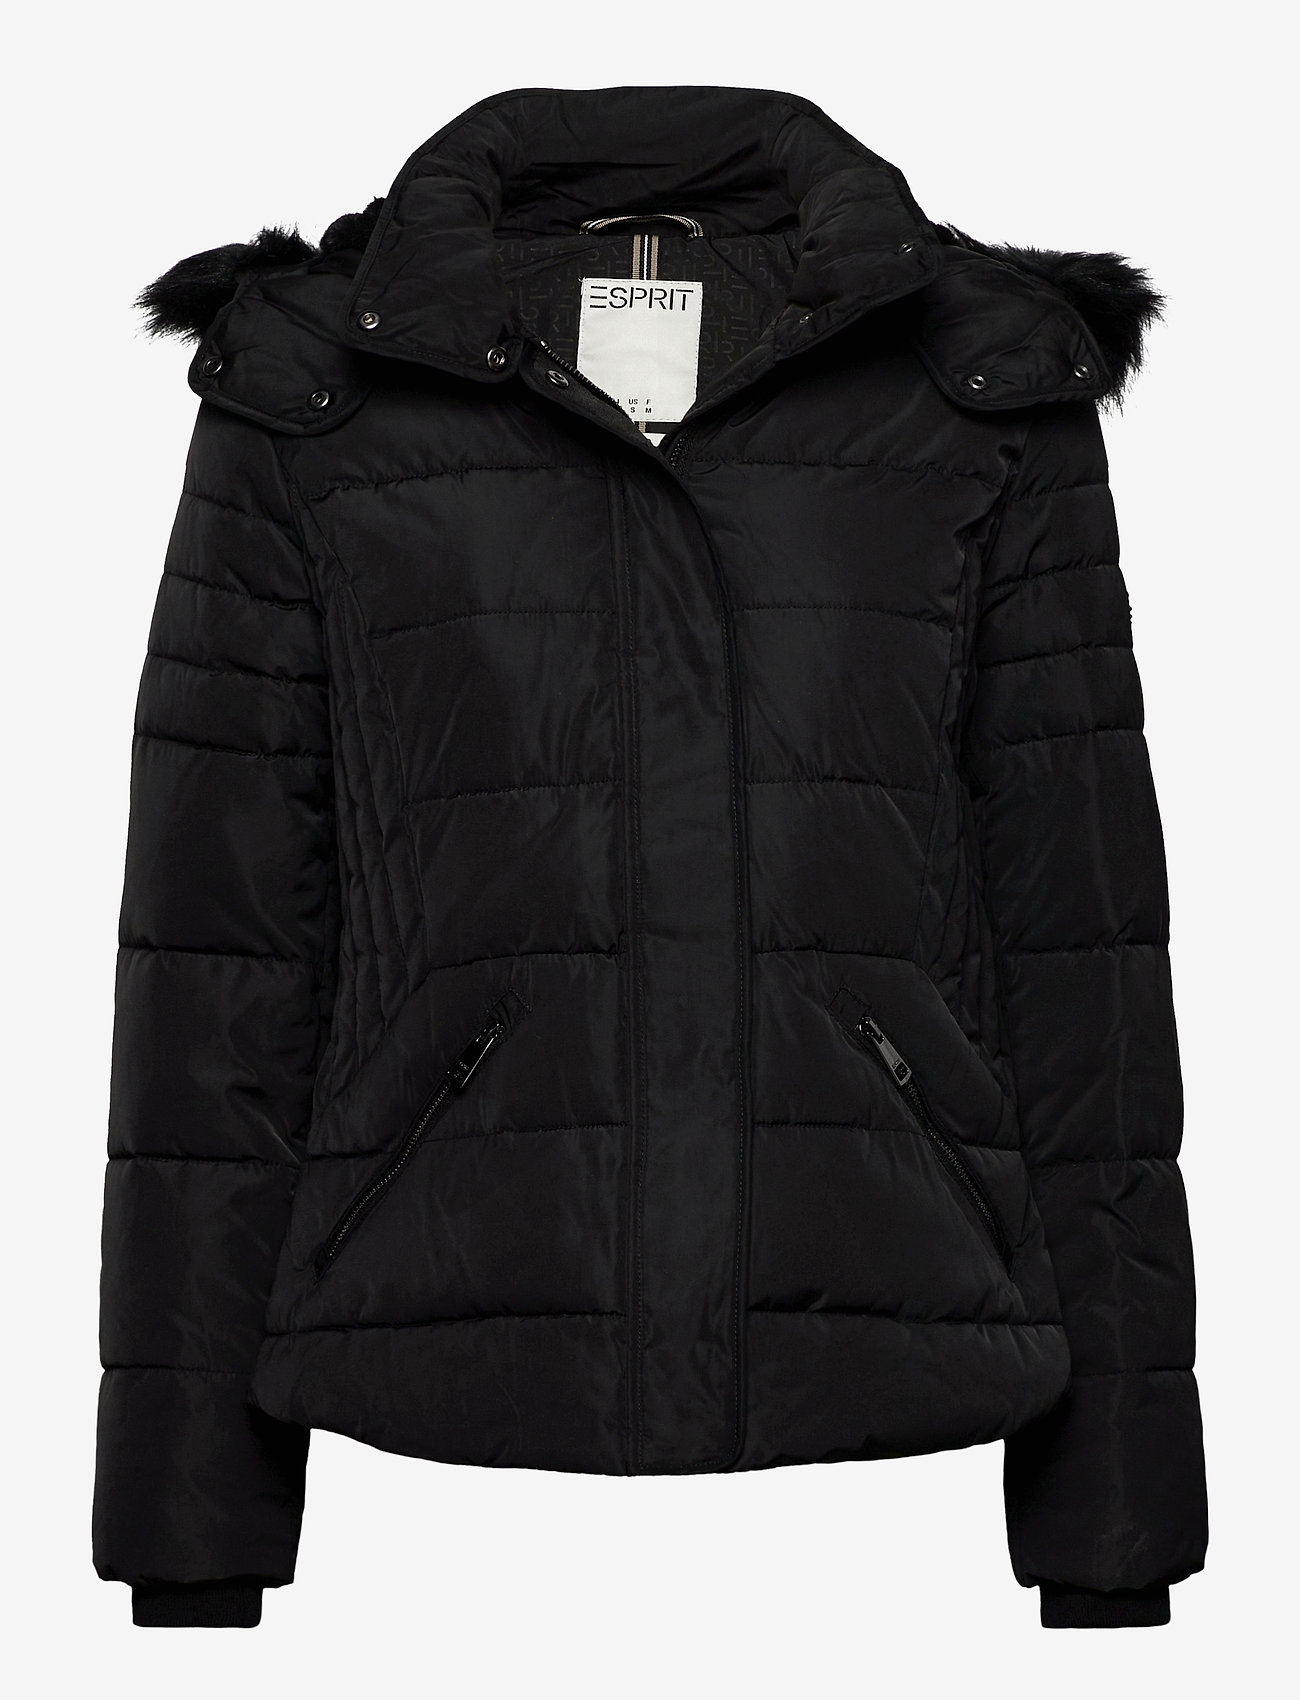 Esprit Casual - Jackets outdoor woven - doudounes - black - 0